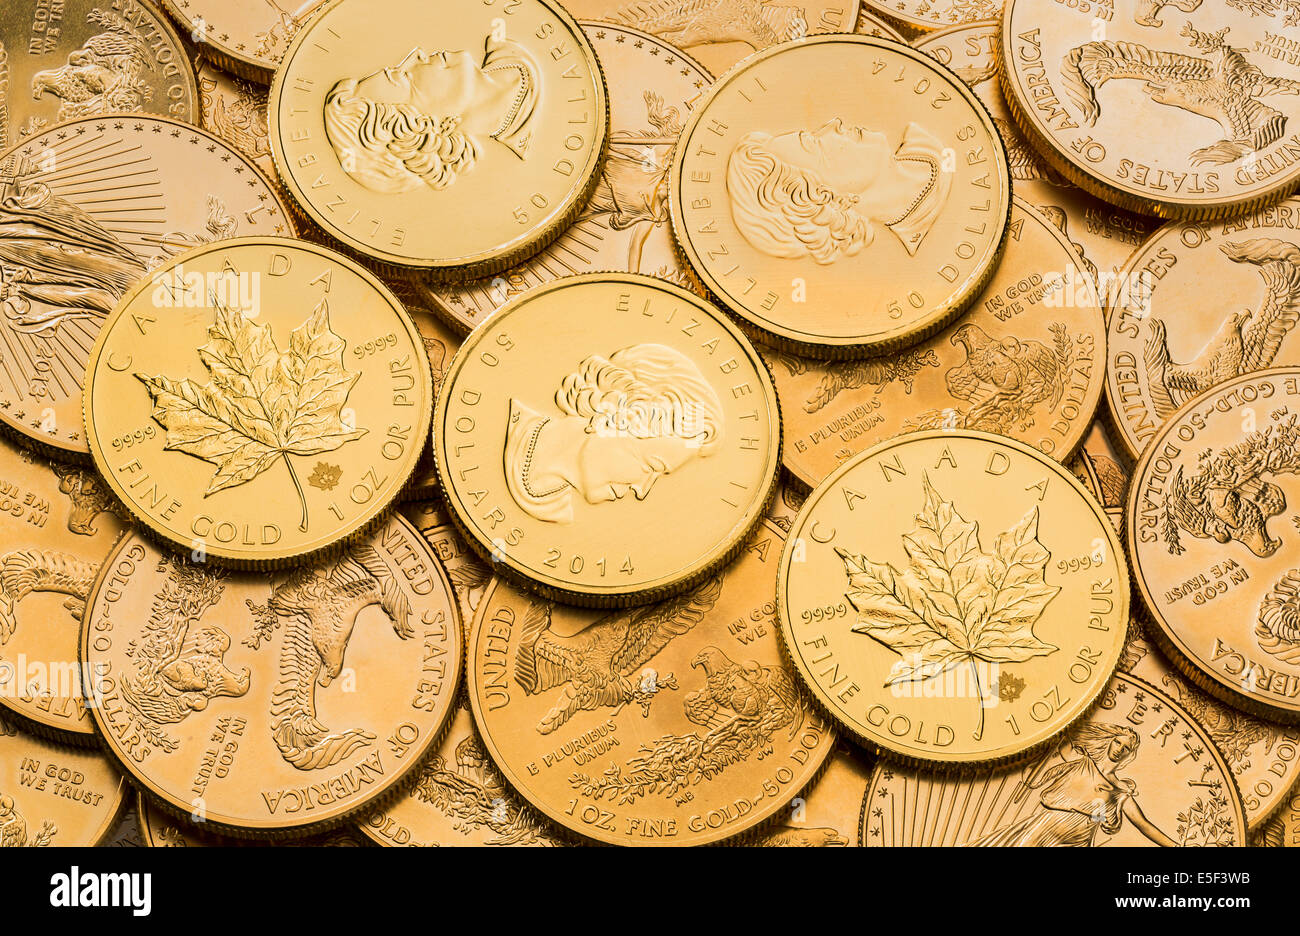 Gold eagle one troy ounce golden coins from US Treasury mint and Canadian Gold Maple Leaf coins - Stock Image